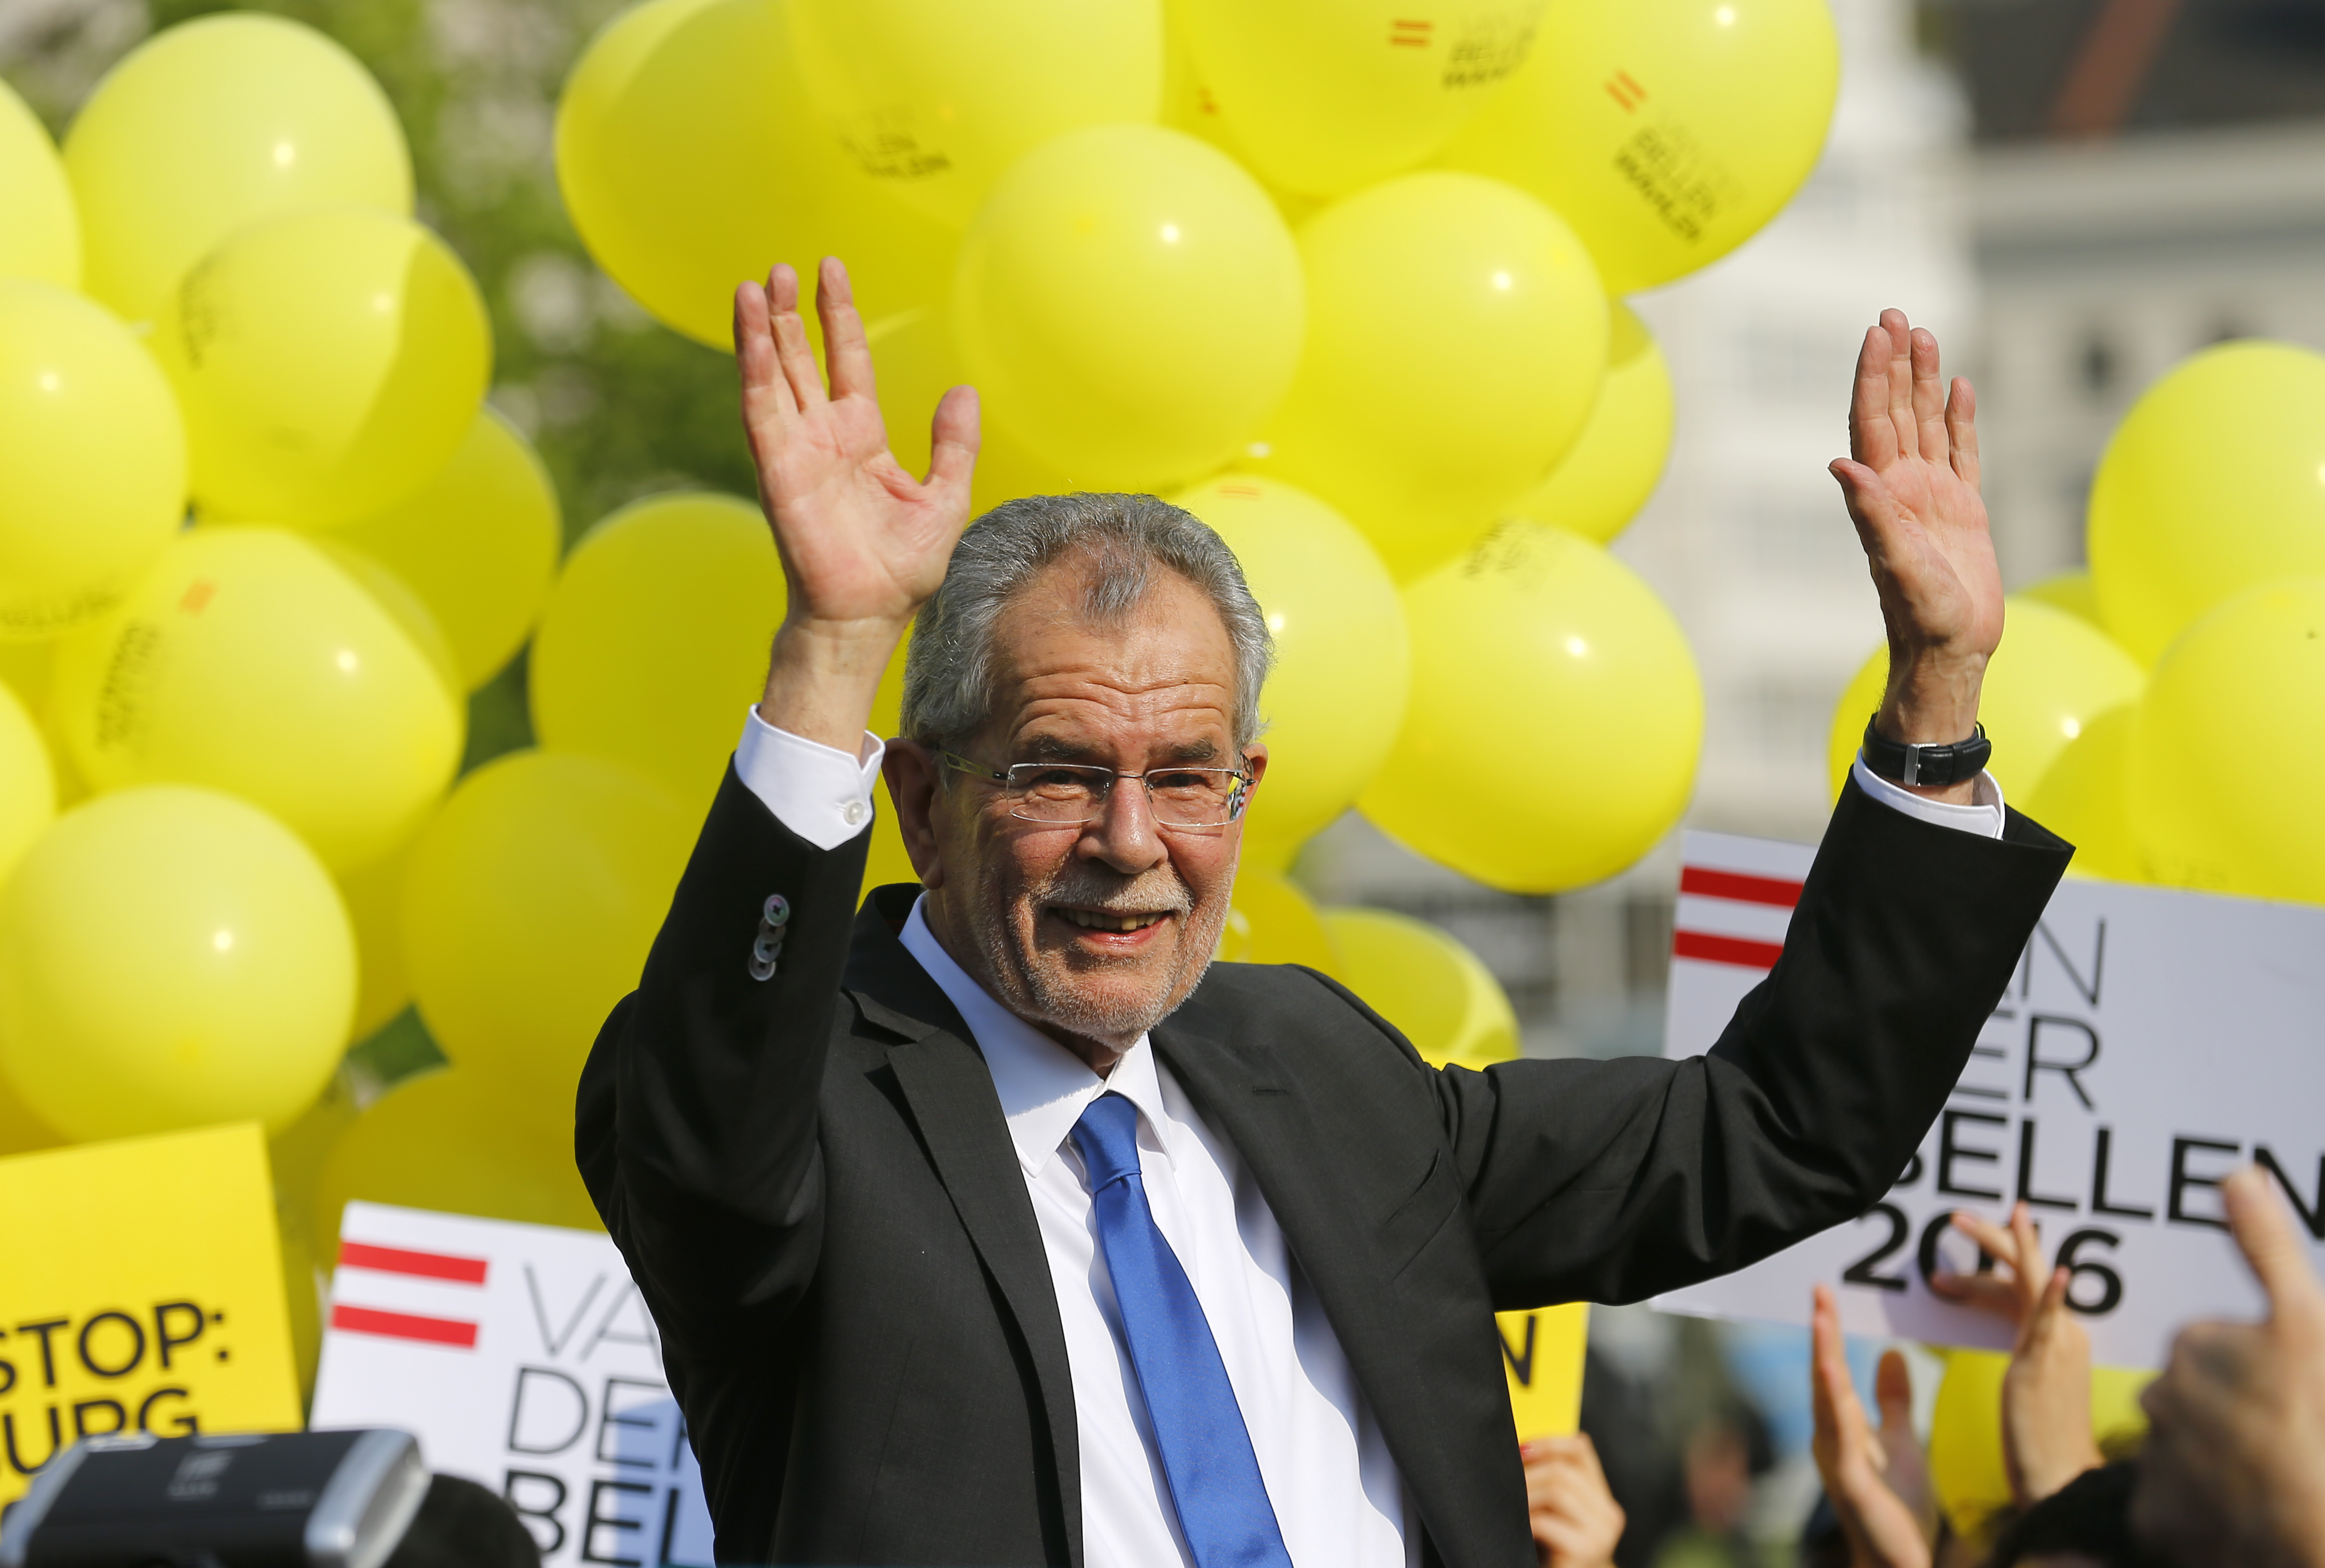 Presidential candidate Van der Bellen arrives for his final election rally ahead of Austrian presidential election in Vienna